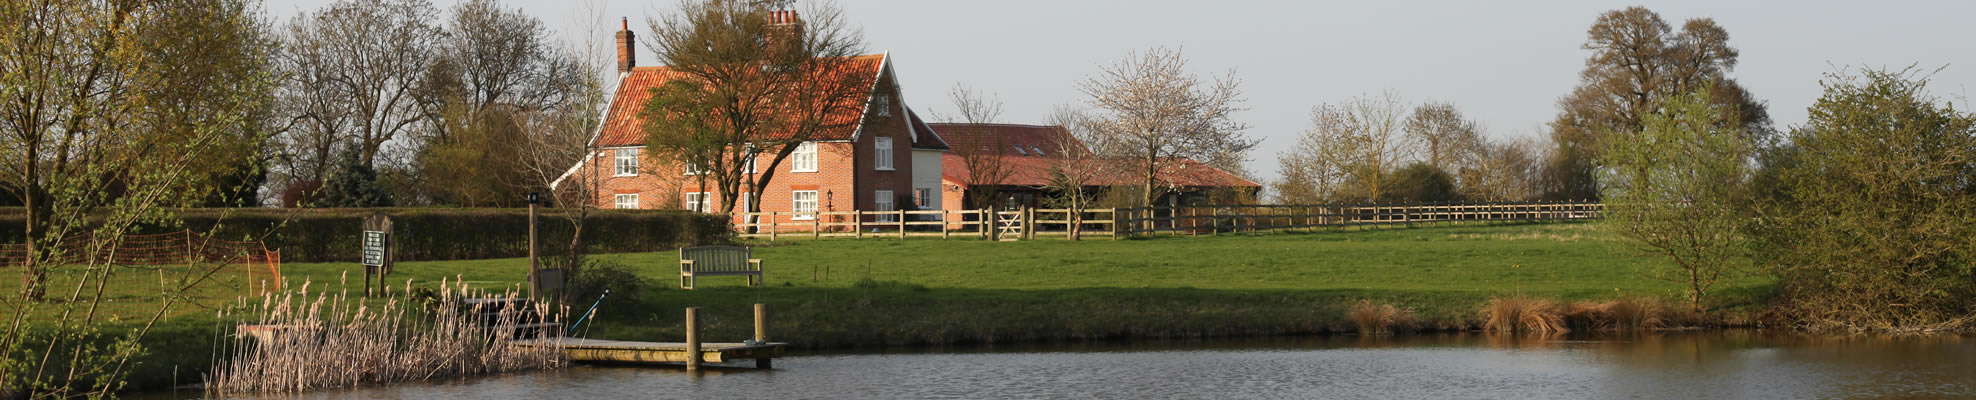 Dunnett Farm Barn